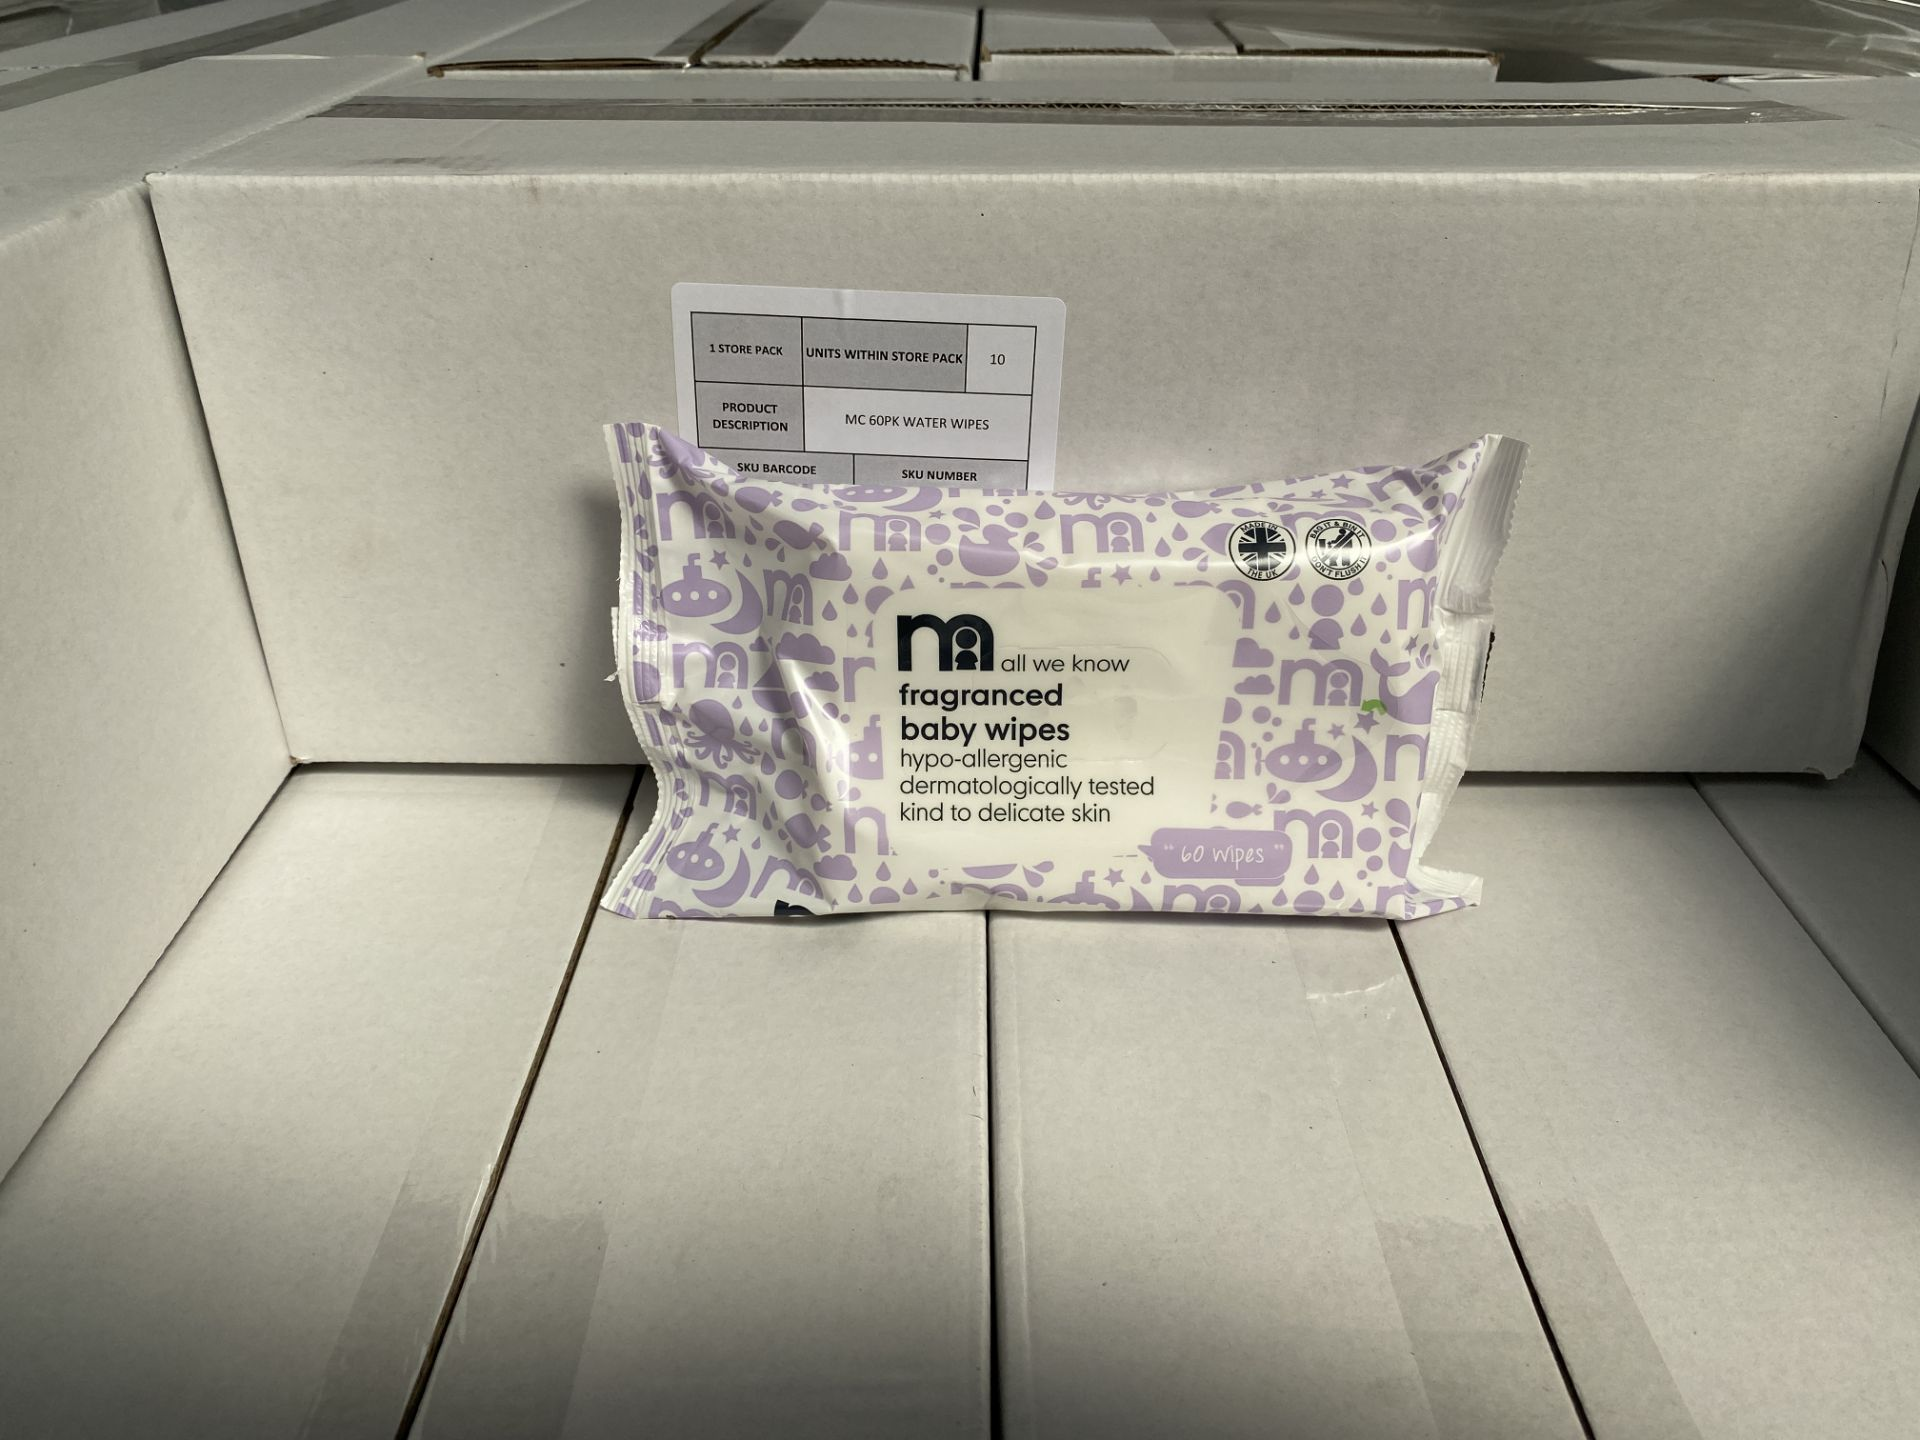 Lot 51 - MOTHERCARE fragranced baby wipes. 100 x 60 pack. RRP £299 PLUS